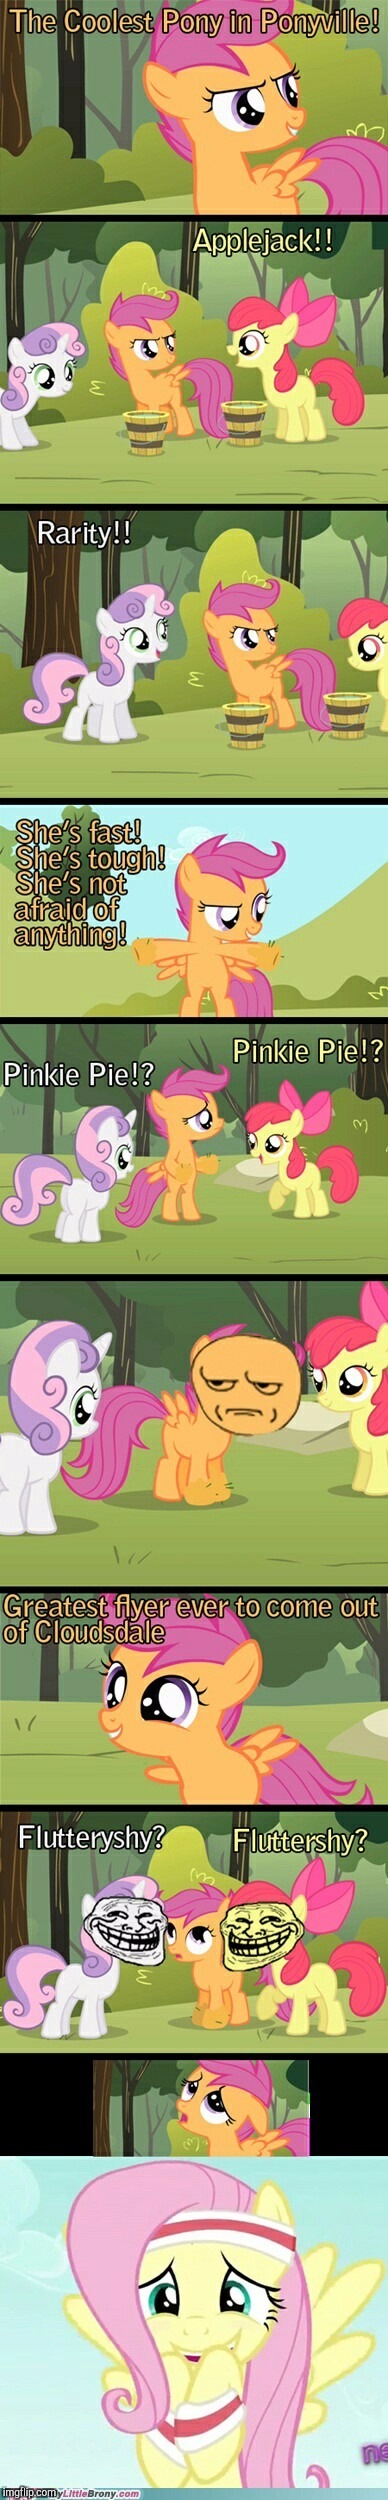 They are probably just messing with Scootaloo! | image tagged in memes,my little pony,fluttershy,pinkie pie,rarity,applejack | made w/ Imgflip meme maker